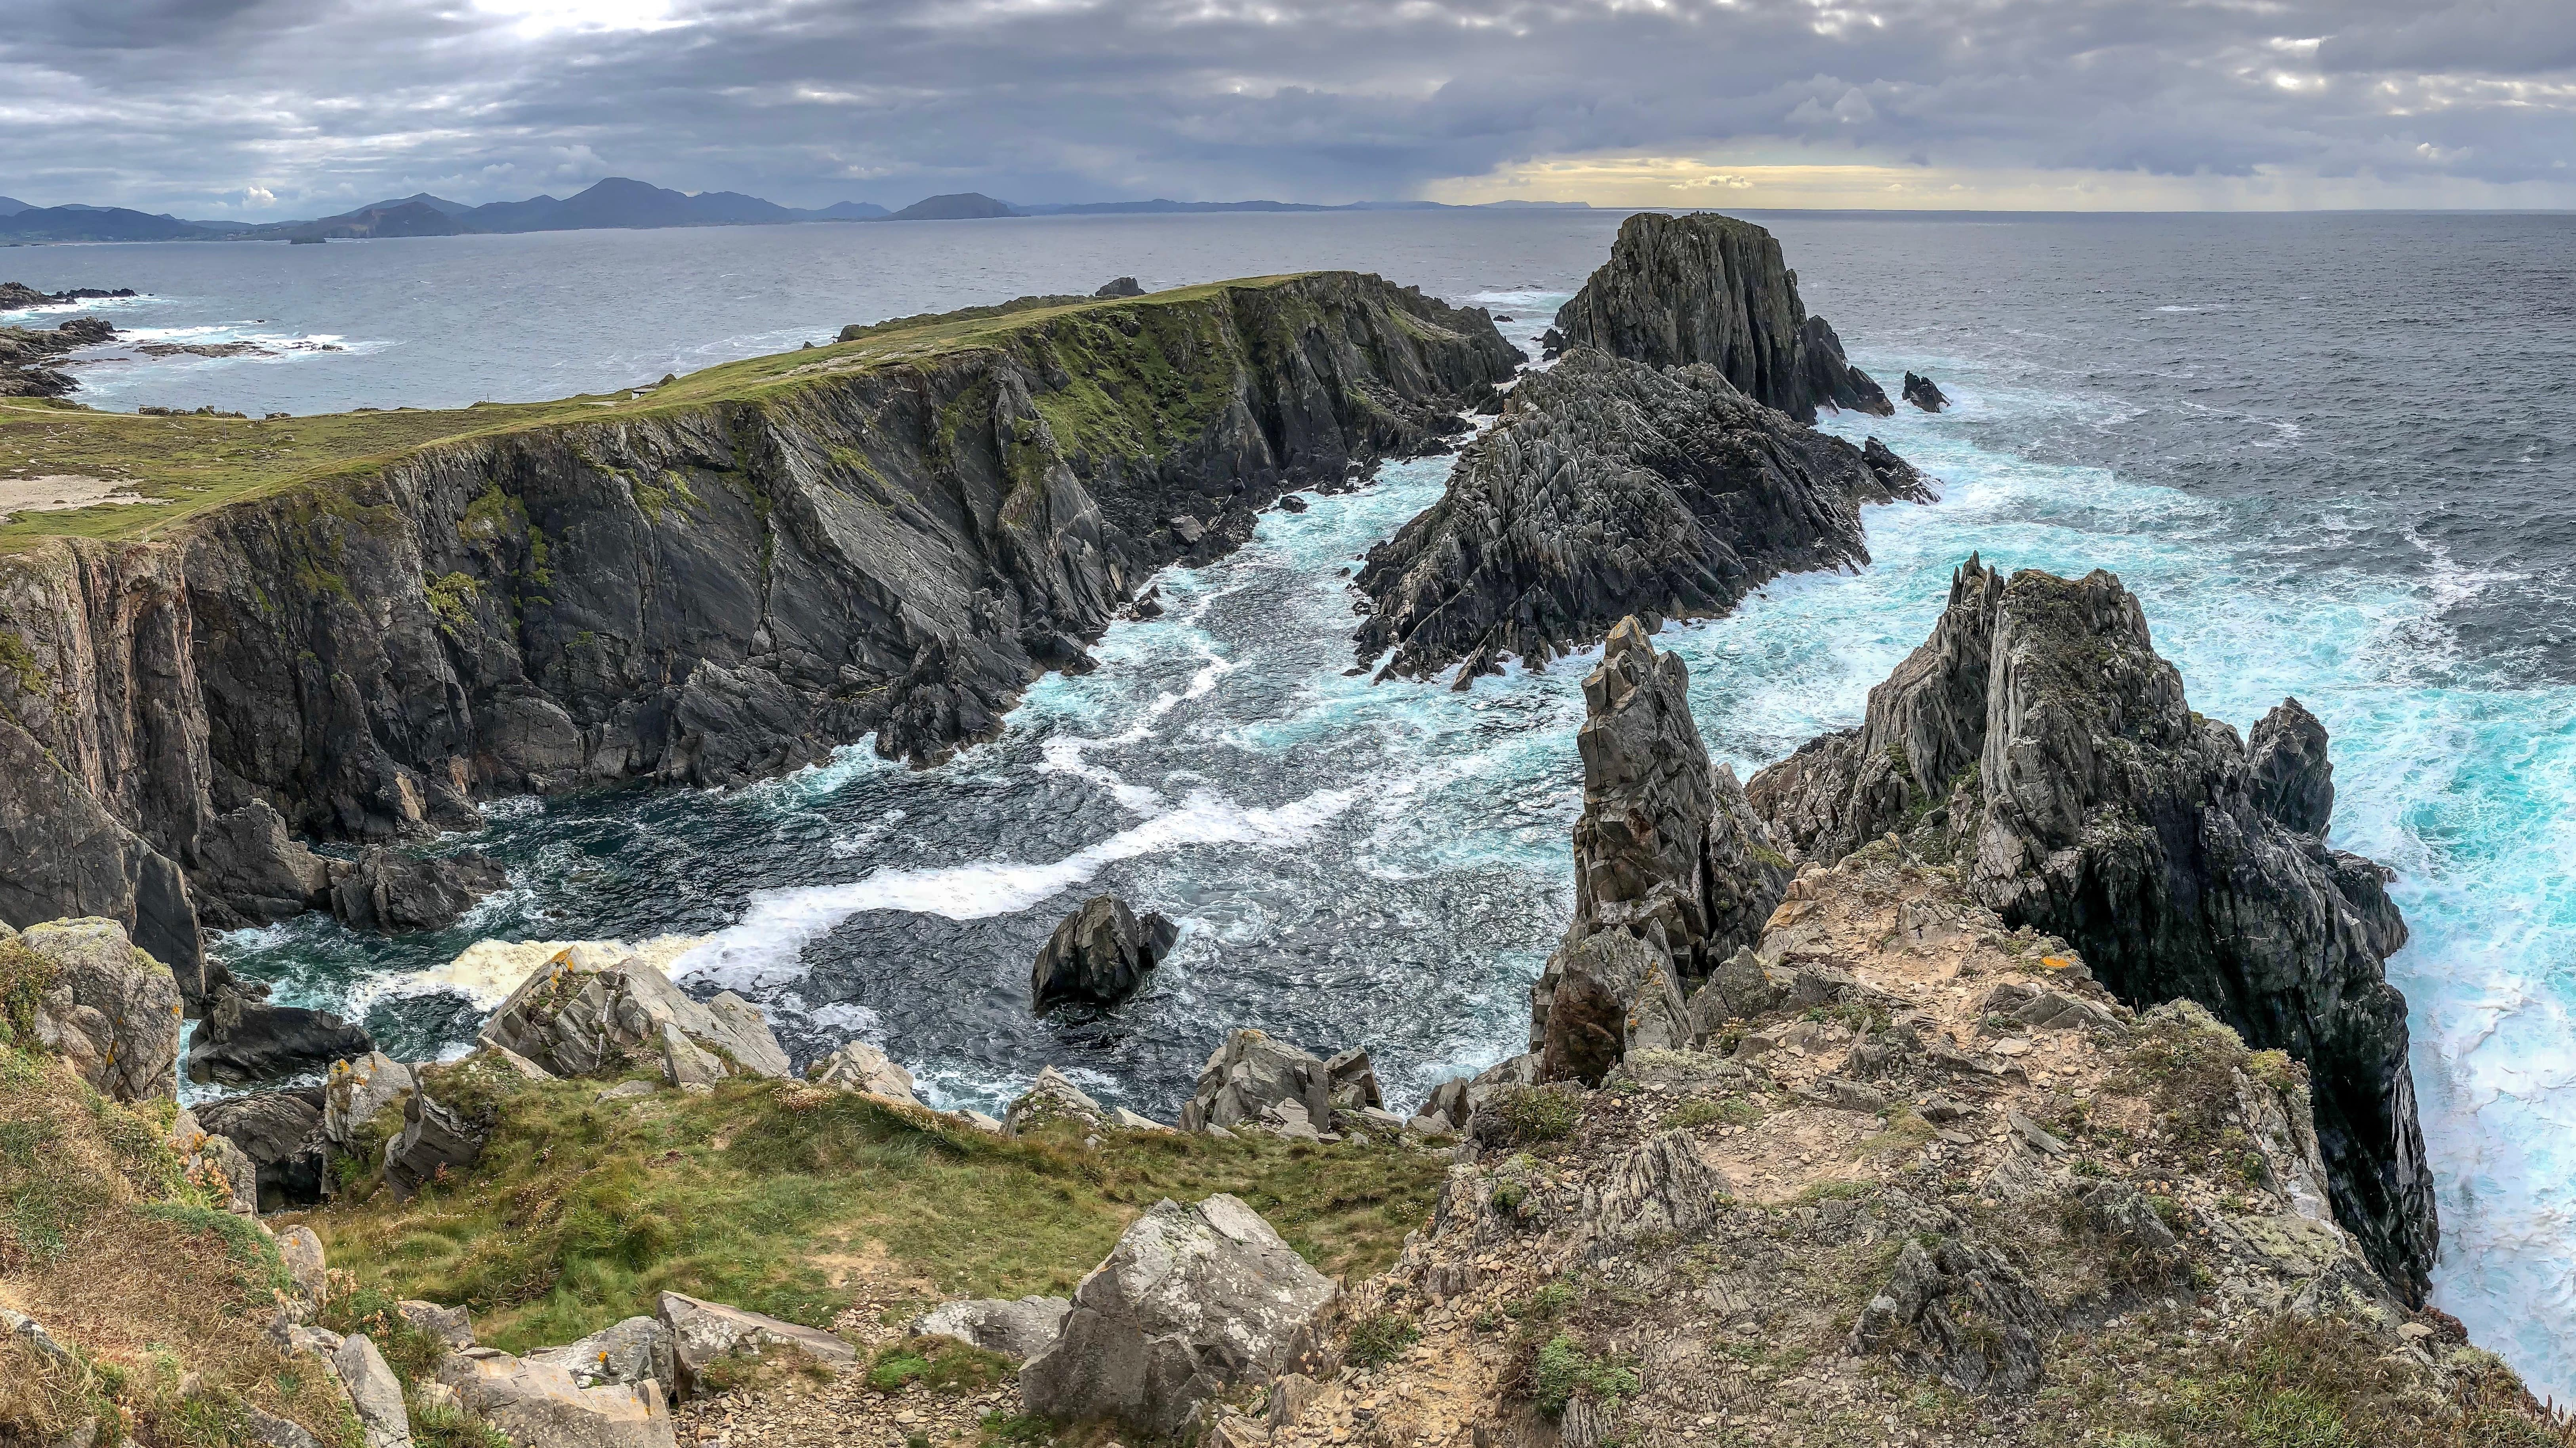 Seeing the northern lights at Malin Head is an amazing thing to do in Donegal ireland